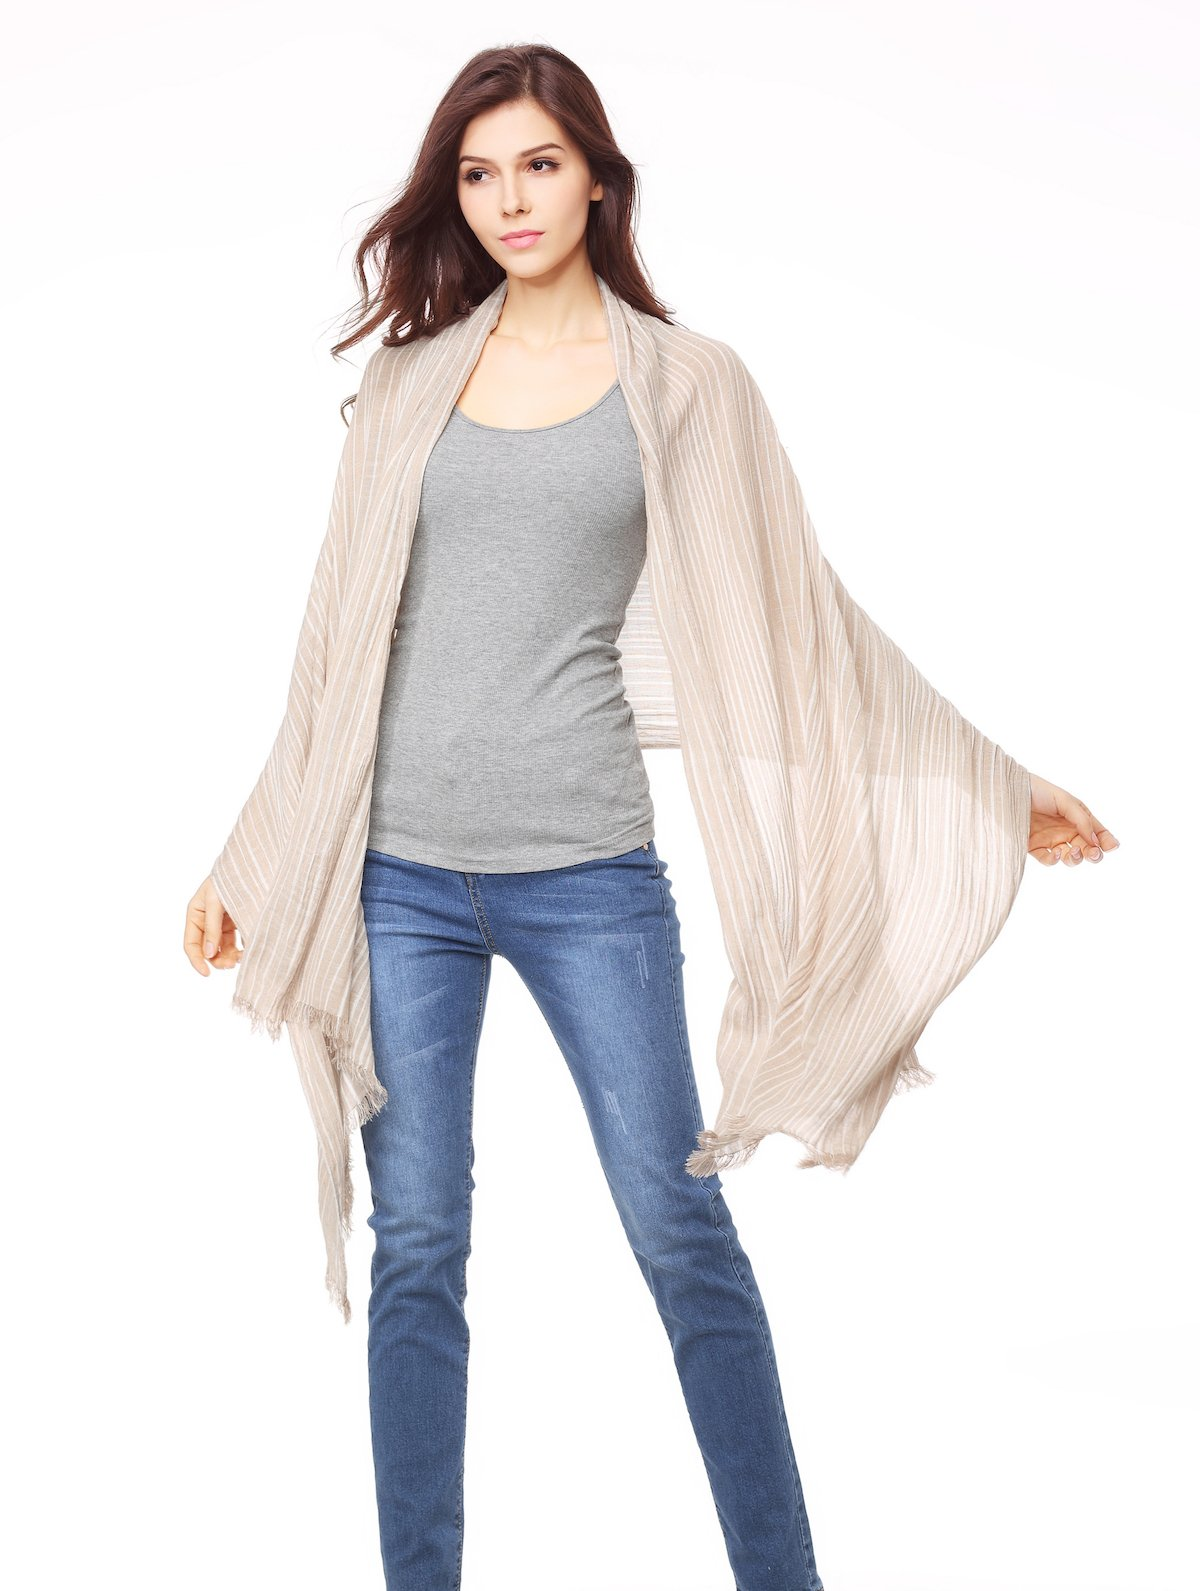 Cotton Scarf Shawl Wrap Soft Lightweight Scarves And Wraps For Men And Women. (Beige cream) by Jeelow (Image #5)